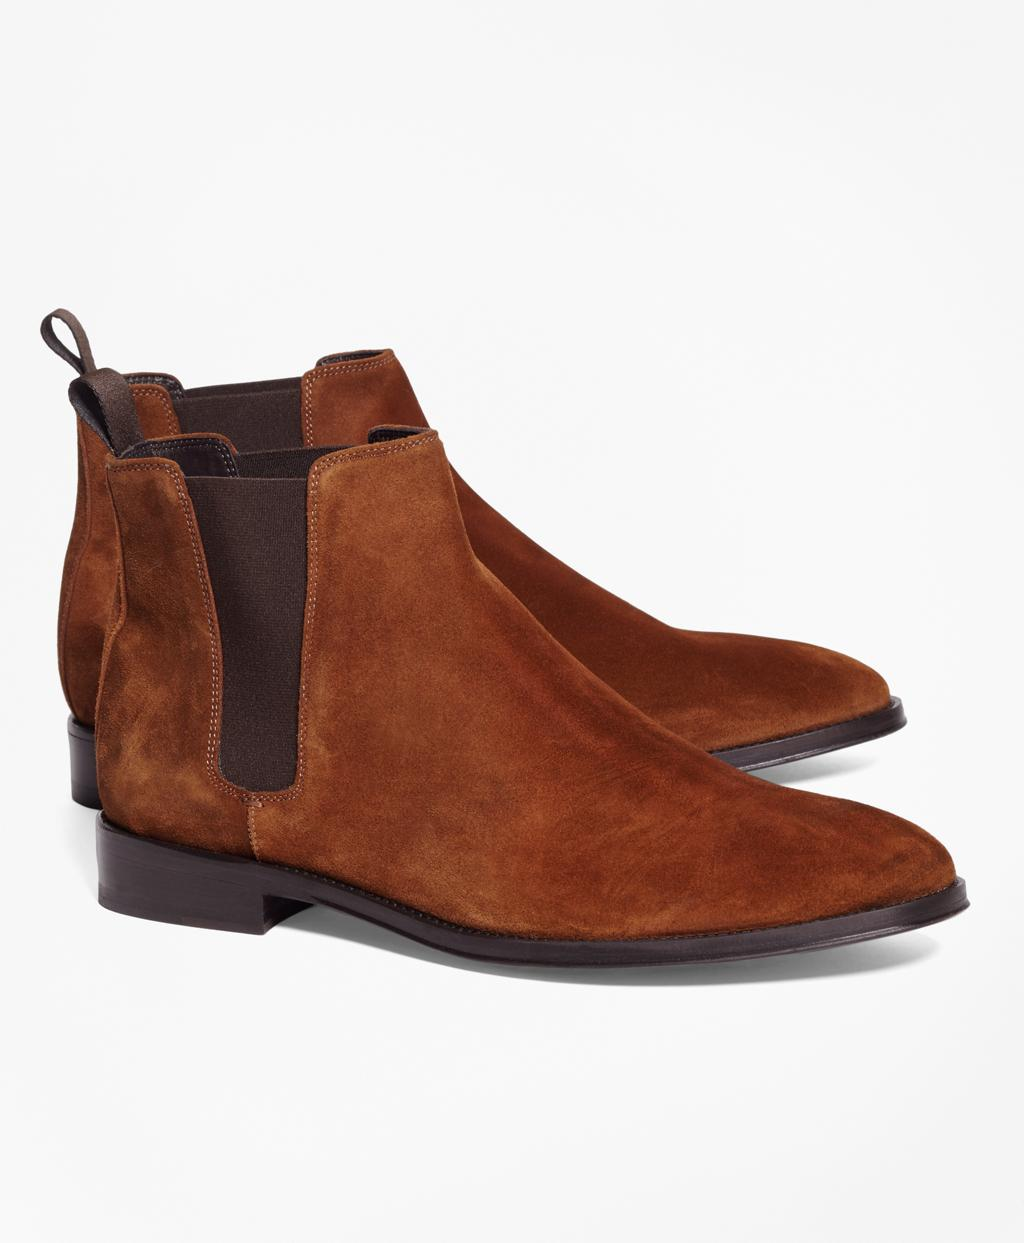 5cdc720f353 Lyst - Brooks Brothers Suede Chelsea Boots in Brown for Men